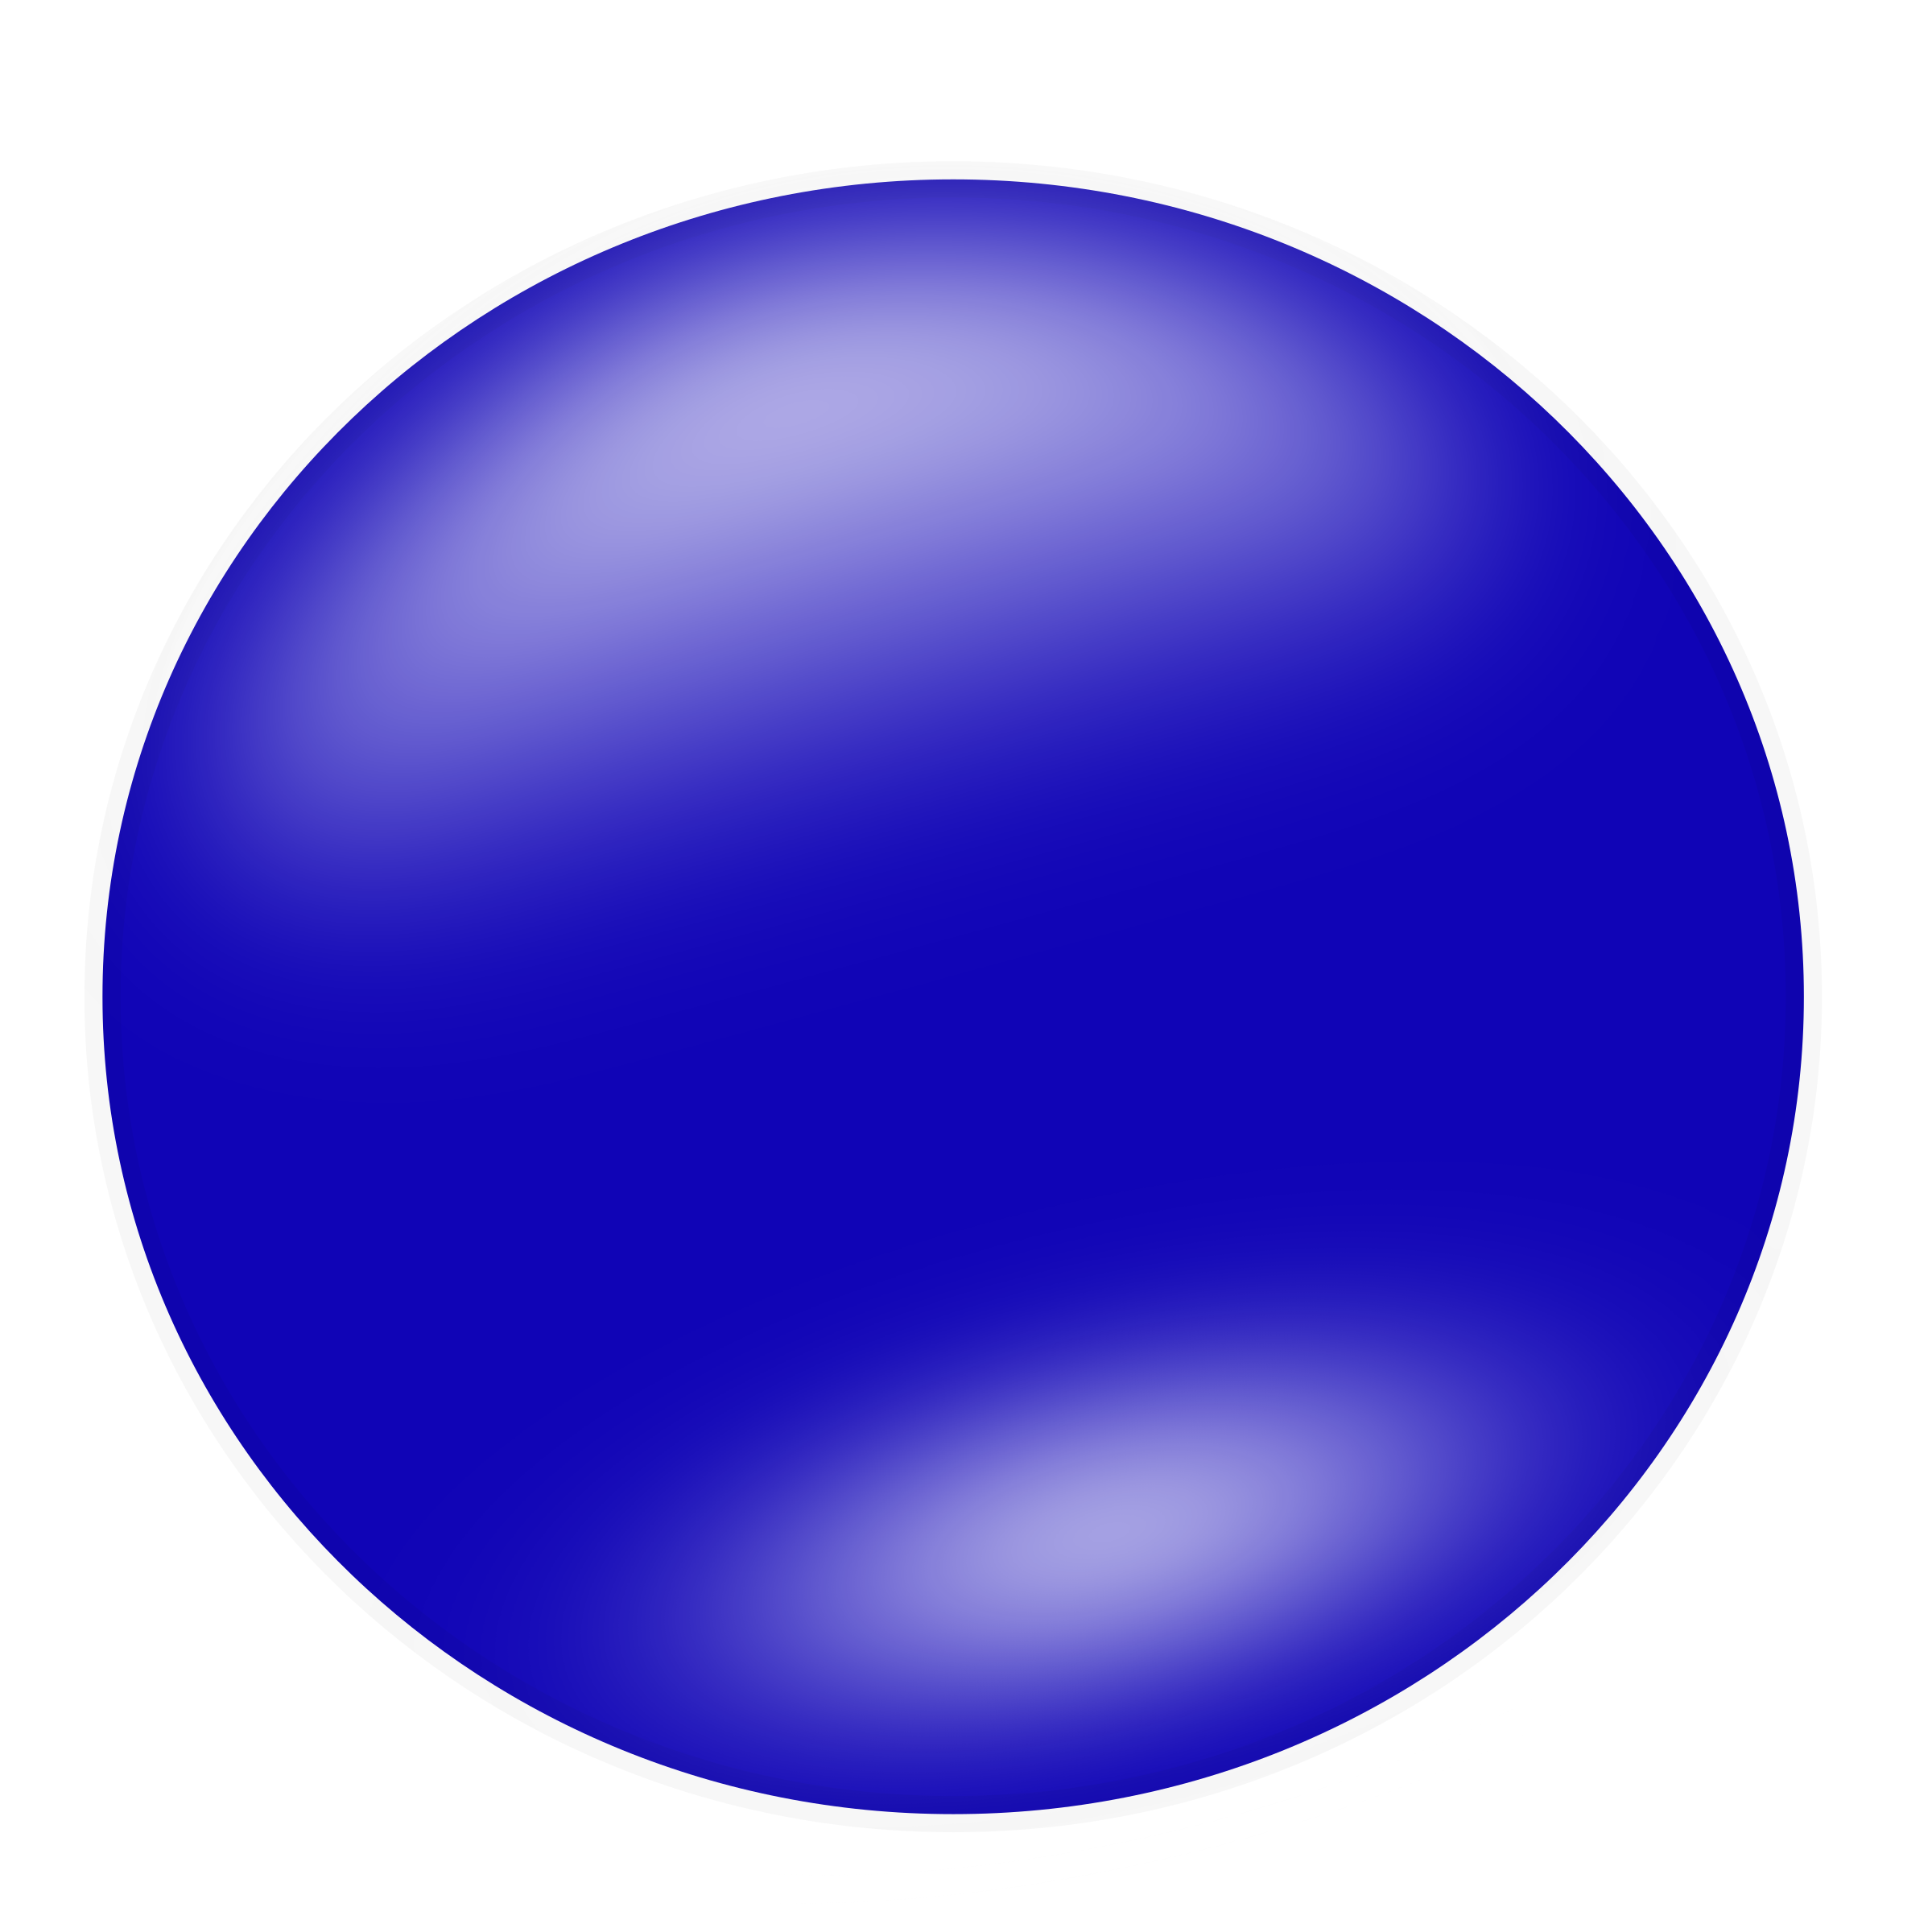 Color circle clipart - Clipground